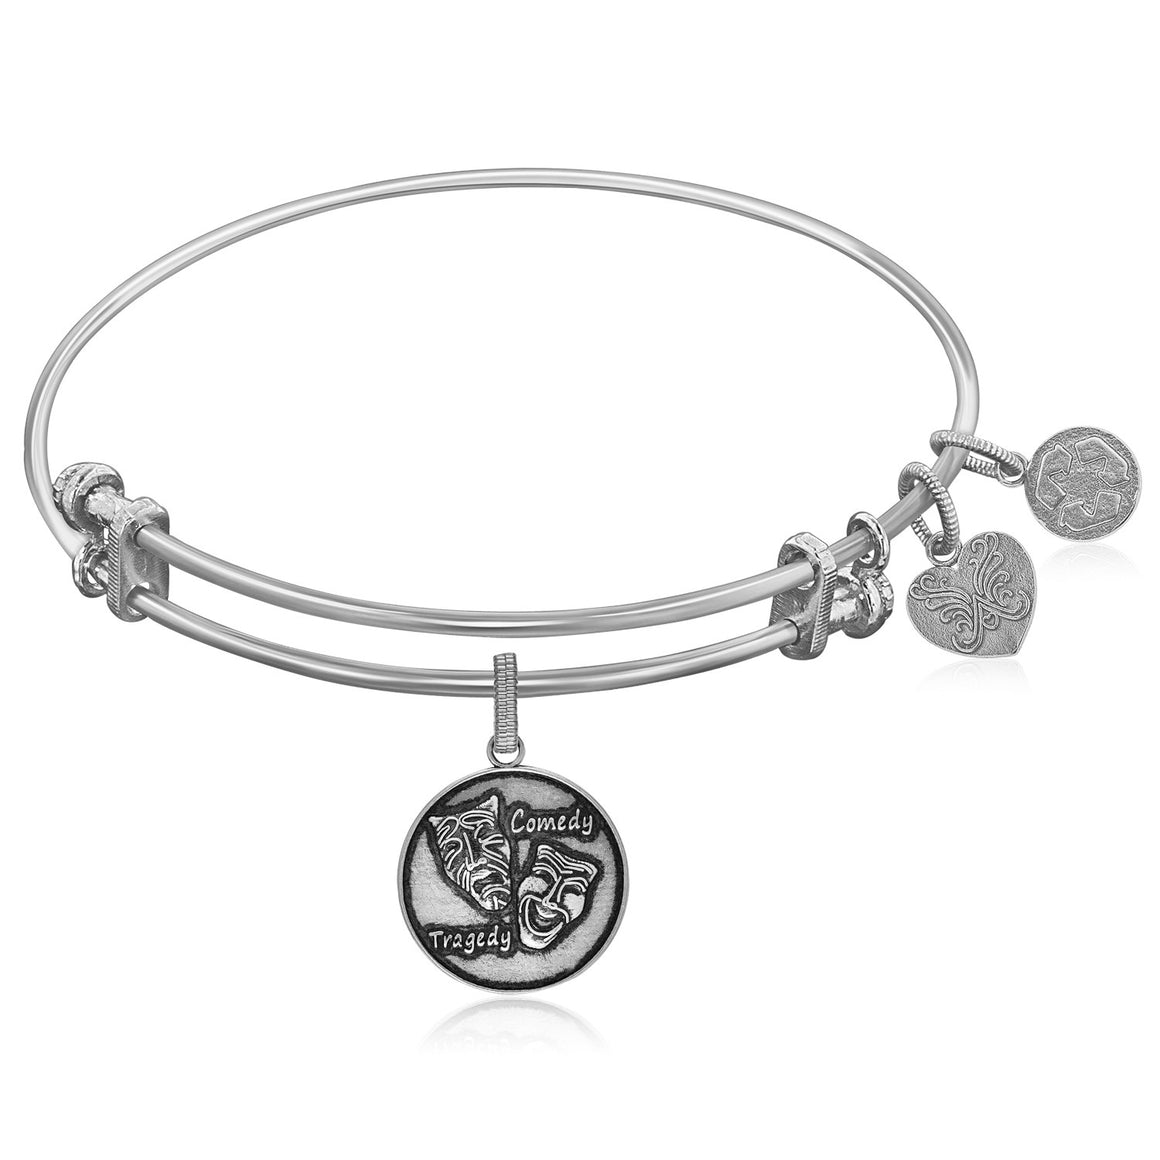 Expandable White Tone Brass Bangle with Comedy Tragedy Symbol